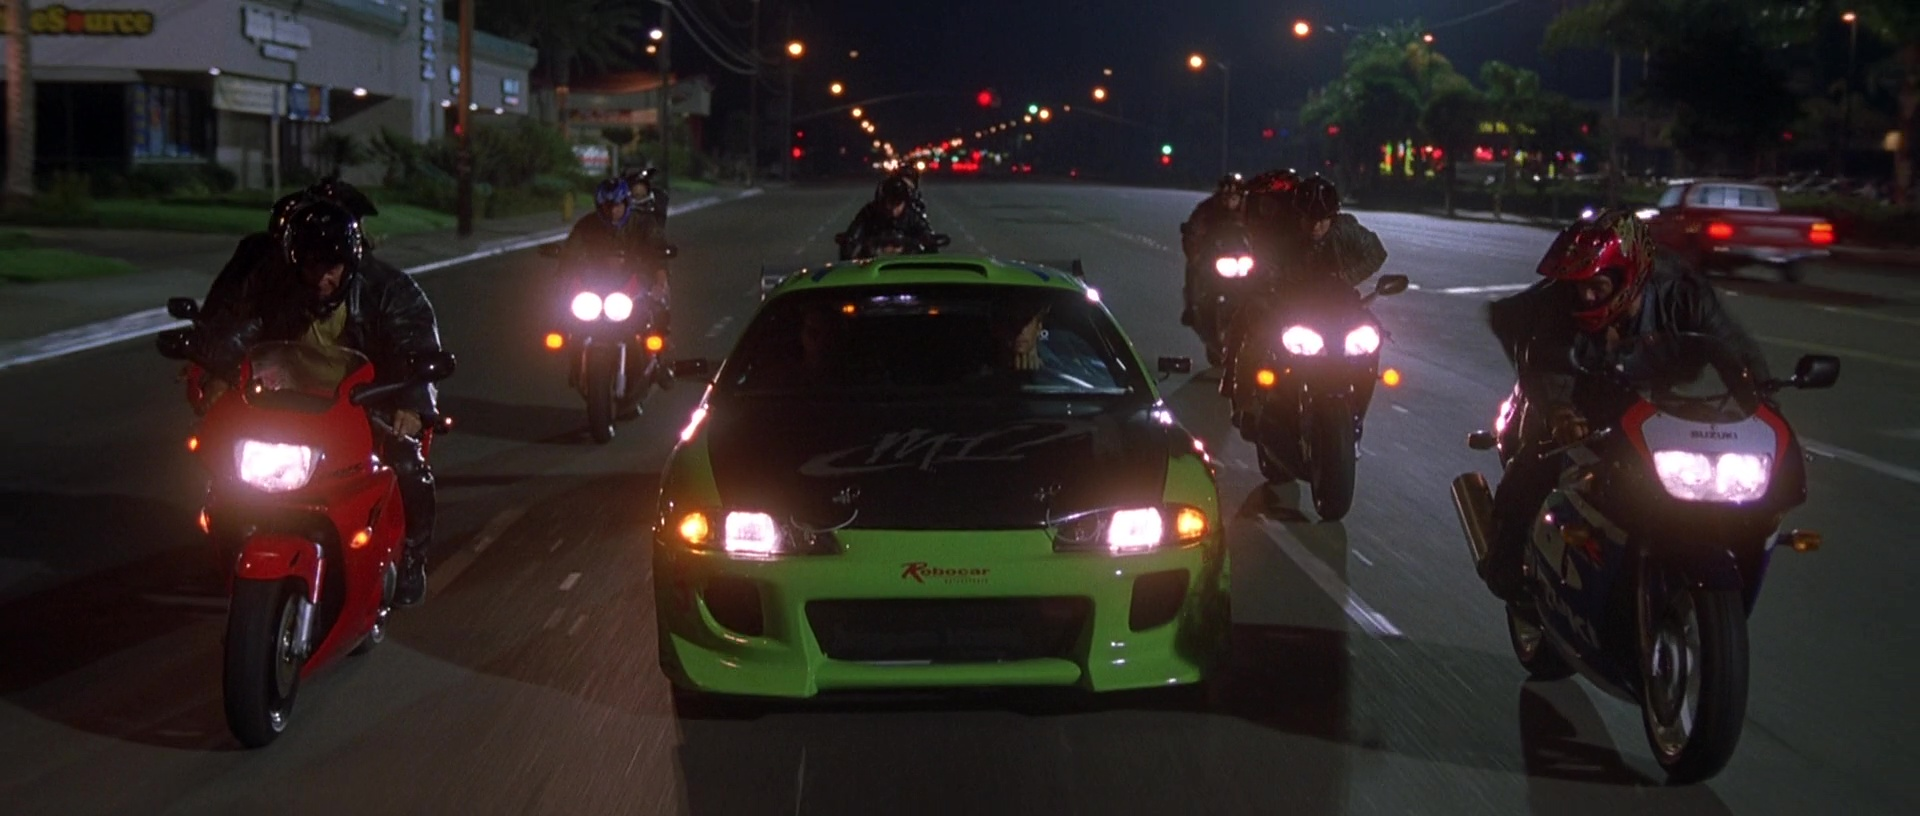 image brian dom the fast and the furious wiki fandom powered by wikia. Black Bedroom Furniture Sets. Home Design Ideas